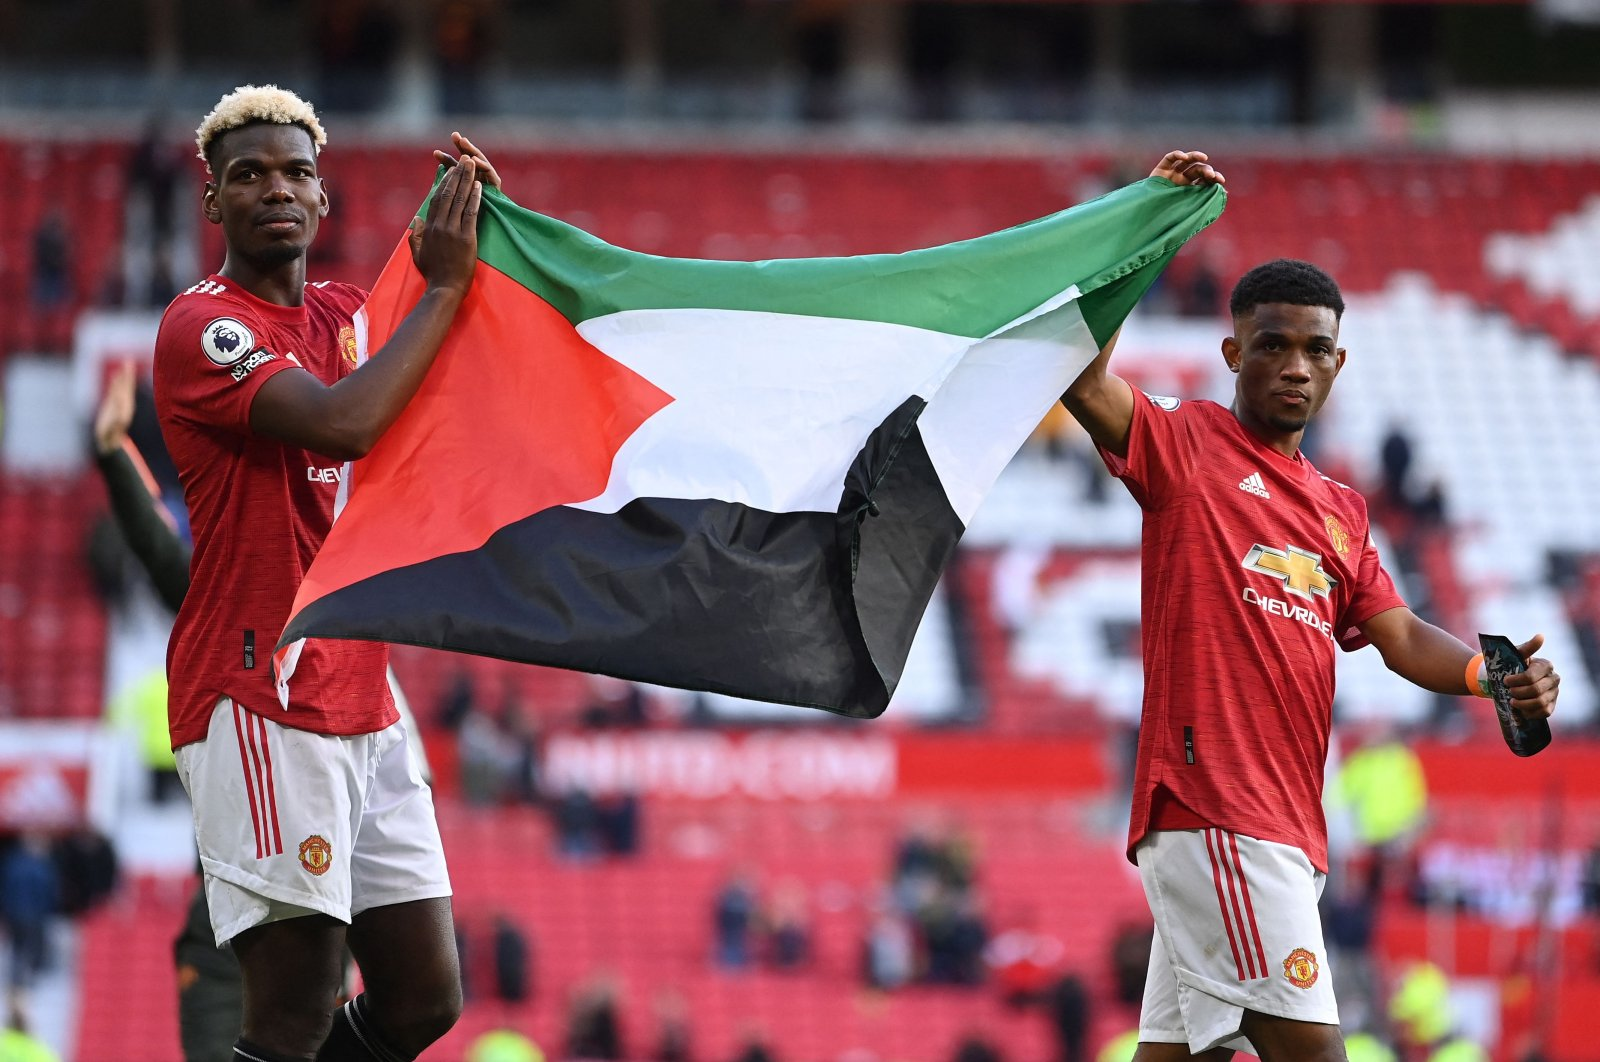 Manchester United's French midfielder Paul Pogba (L) and Manchester United's Ivorian midfielder Amad Diallo (R) display a Palestine flag at the end of their Premier League match against Fulham at the Old Trafford, Manchester, England, May 18, 2021. (AFP Photo)